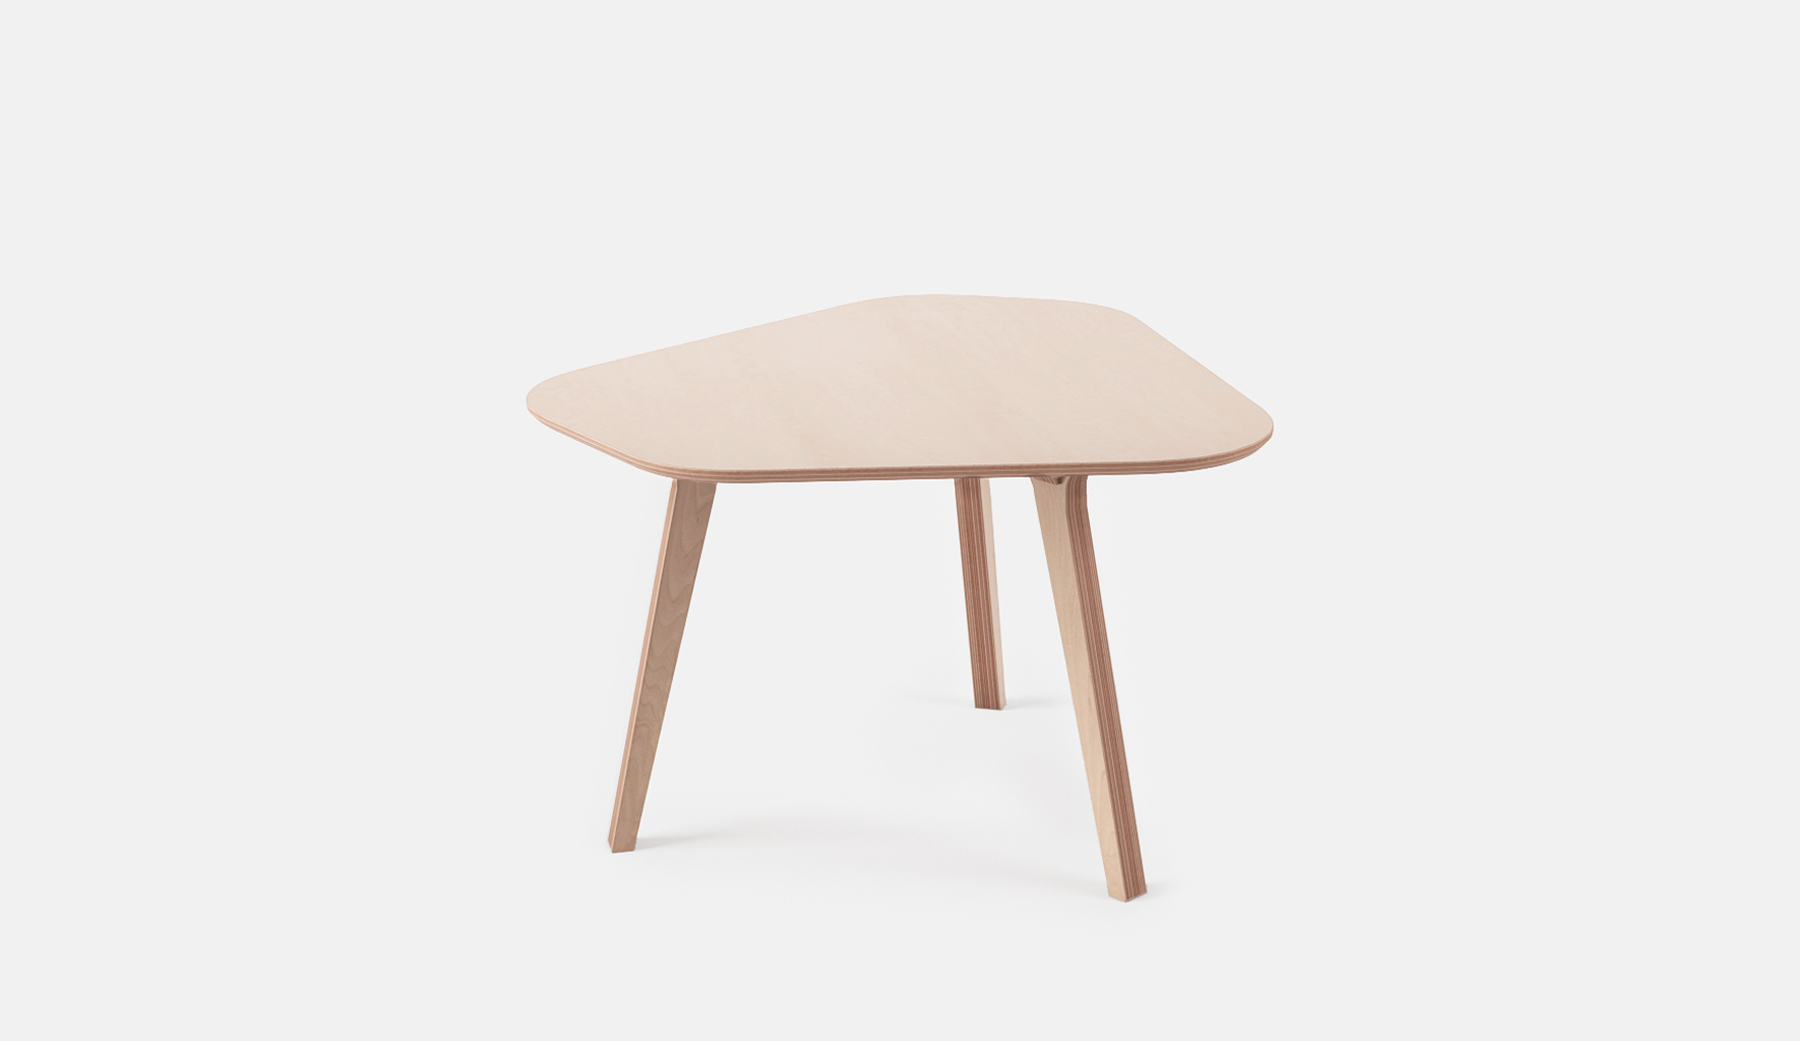 Opendesk Furniture - Cafe table and stools